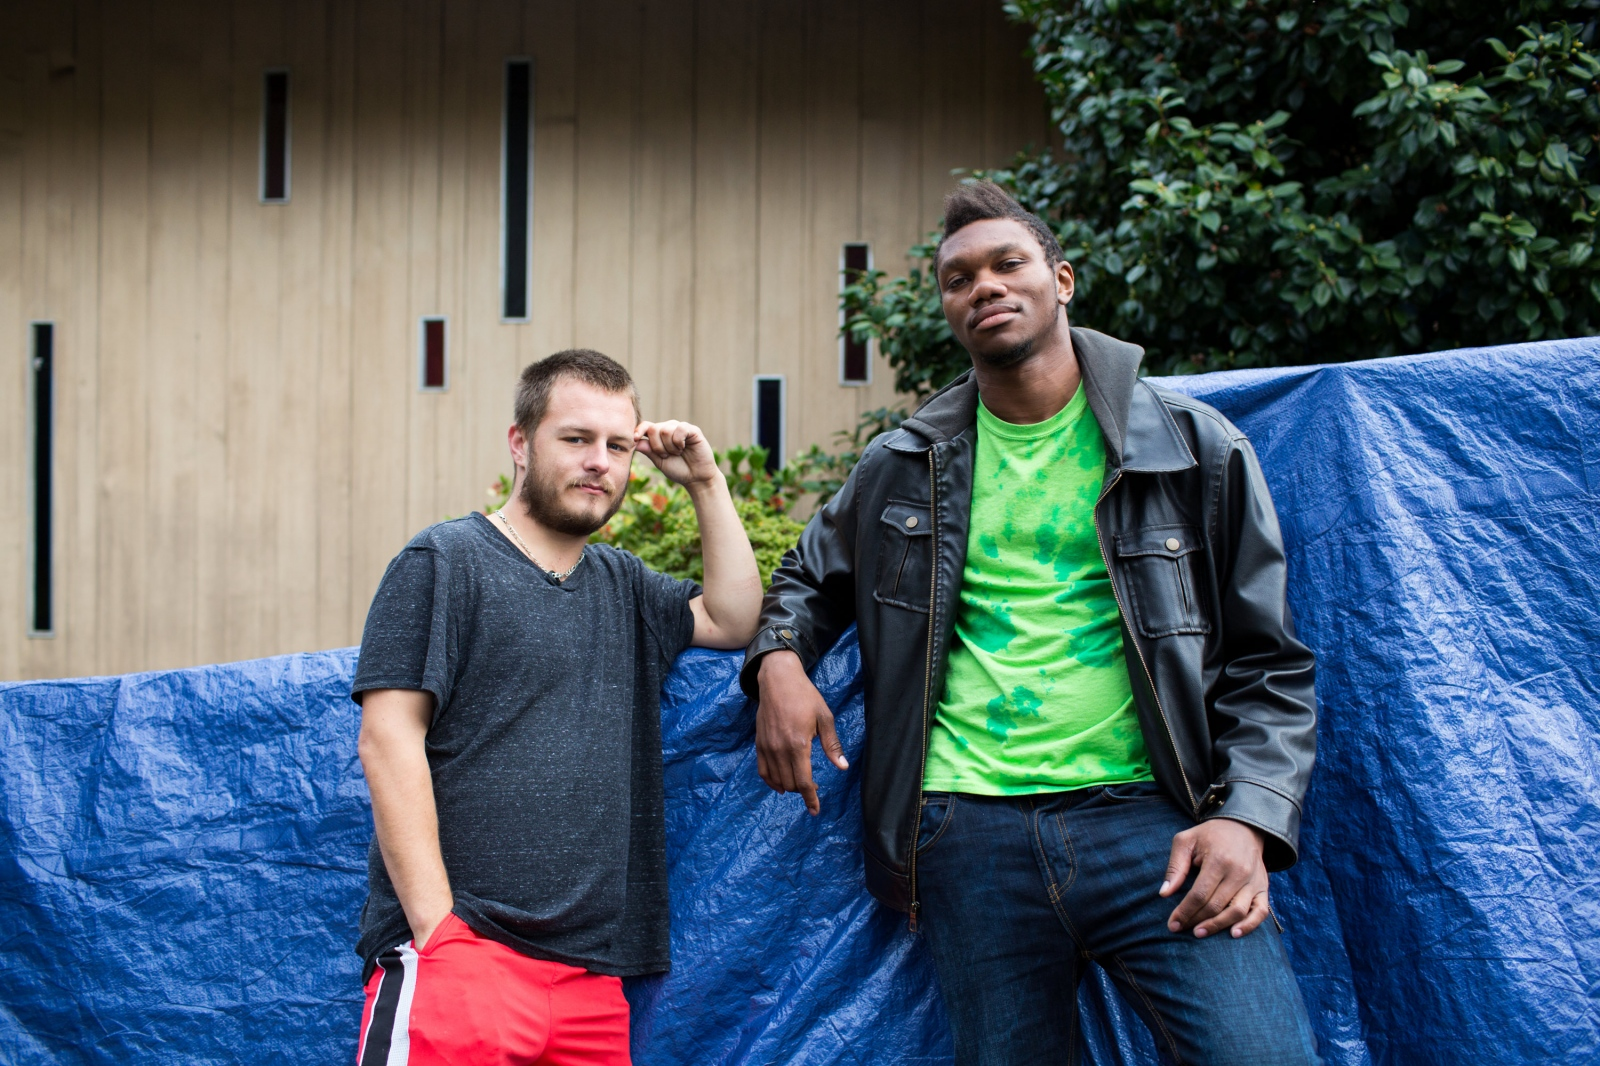 Cody and Isaiah, Tent City 3, Seattle, WA from the series 'Love without Shelter'